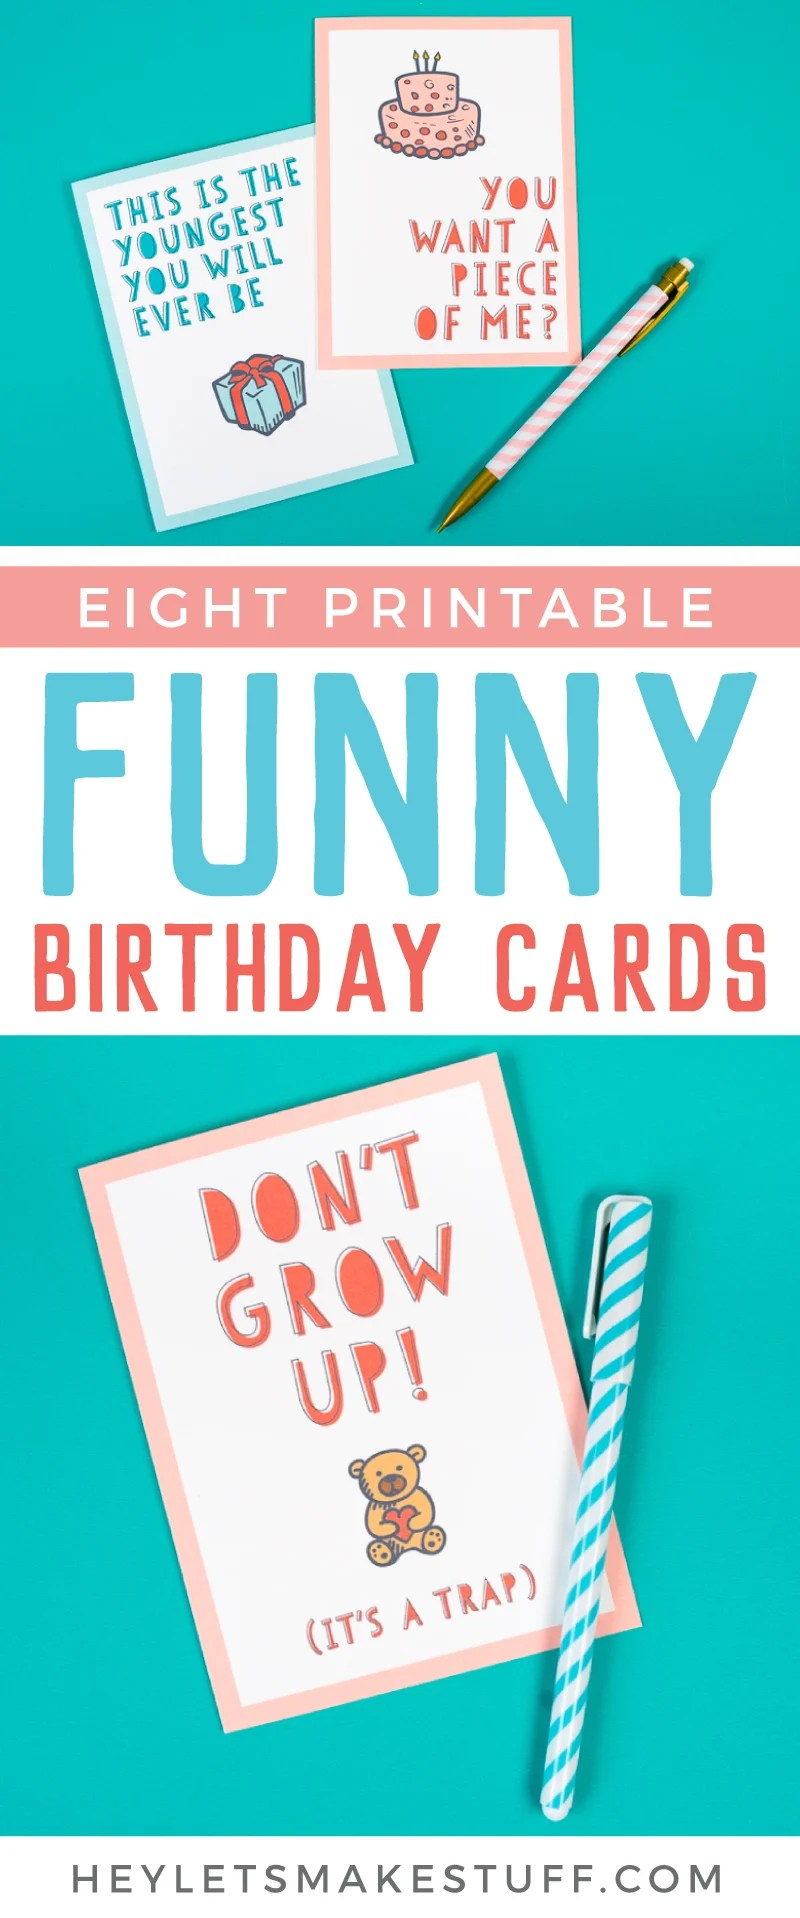 image regarding Funny Printable Birthday Cards referred to as Absolutely free Amusing Printable Birthday Playing cards for Older people - 8 Patterns!